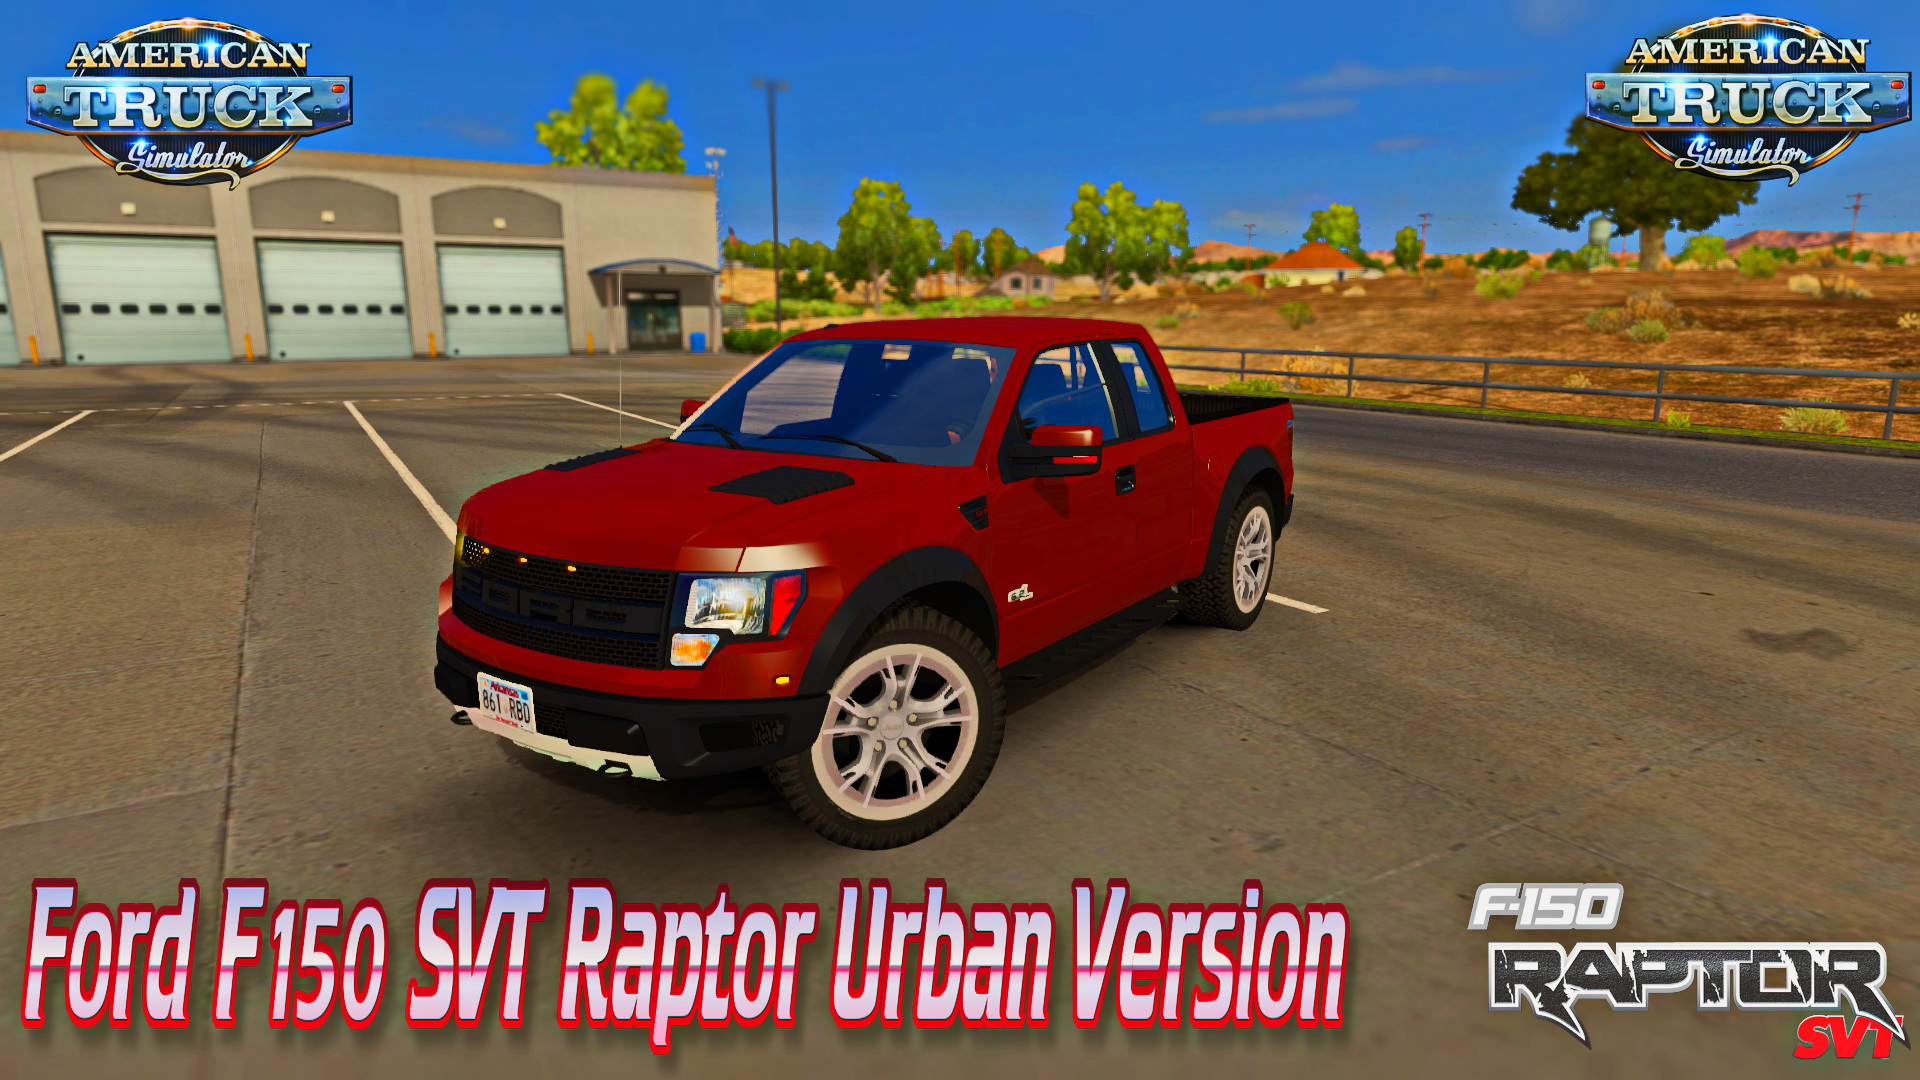 Ford F150 Raptor SVT + Interior (Urban Version) v1.4 for ATS